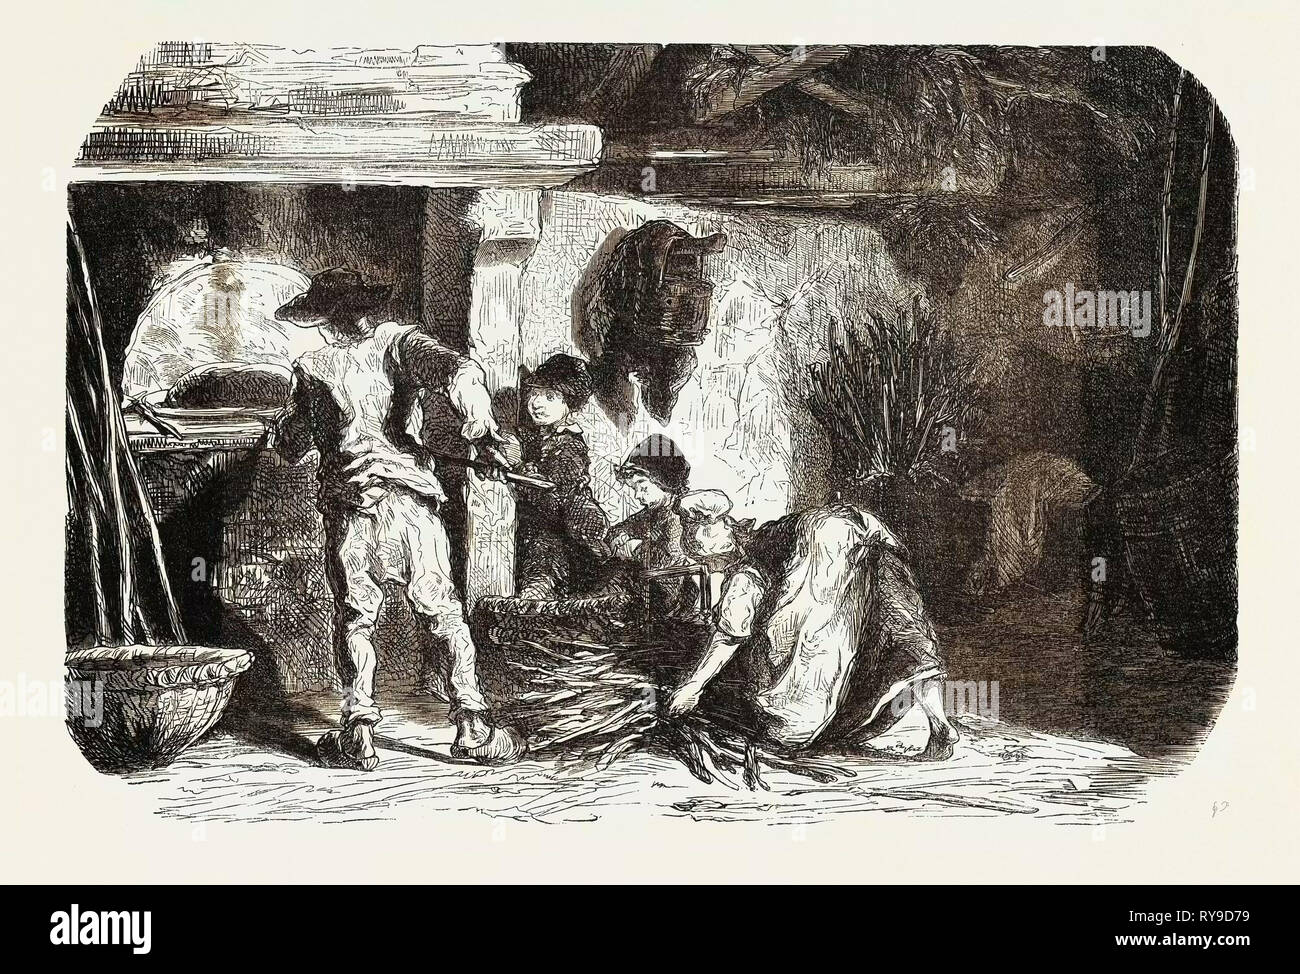 SCENES OF COUNTRY LIFE: The bakehouse. Studies by Damourette. engraving 1855 - Stock Image